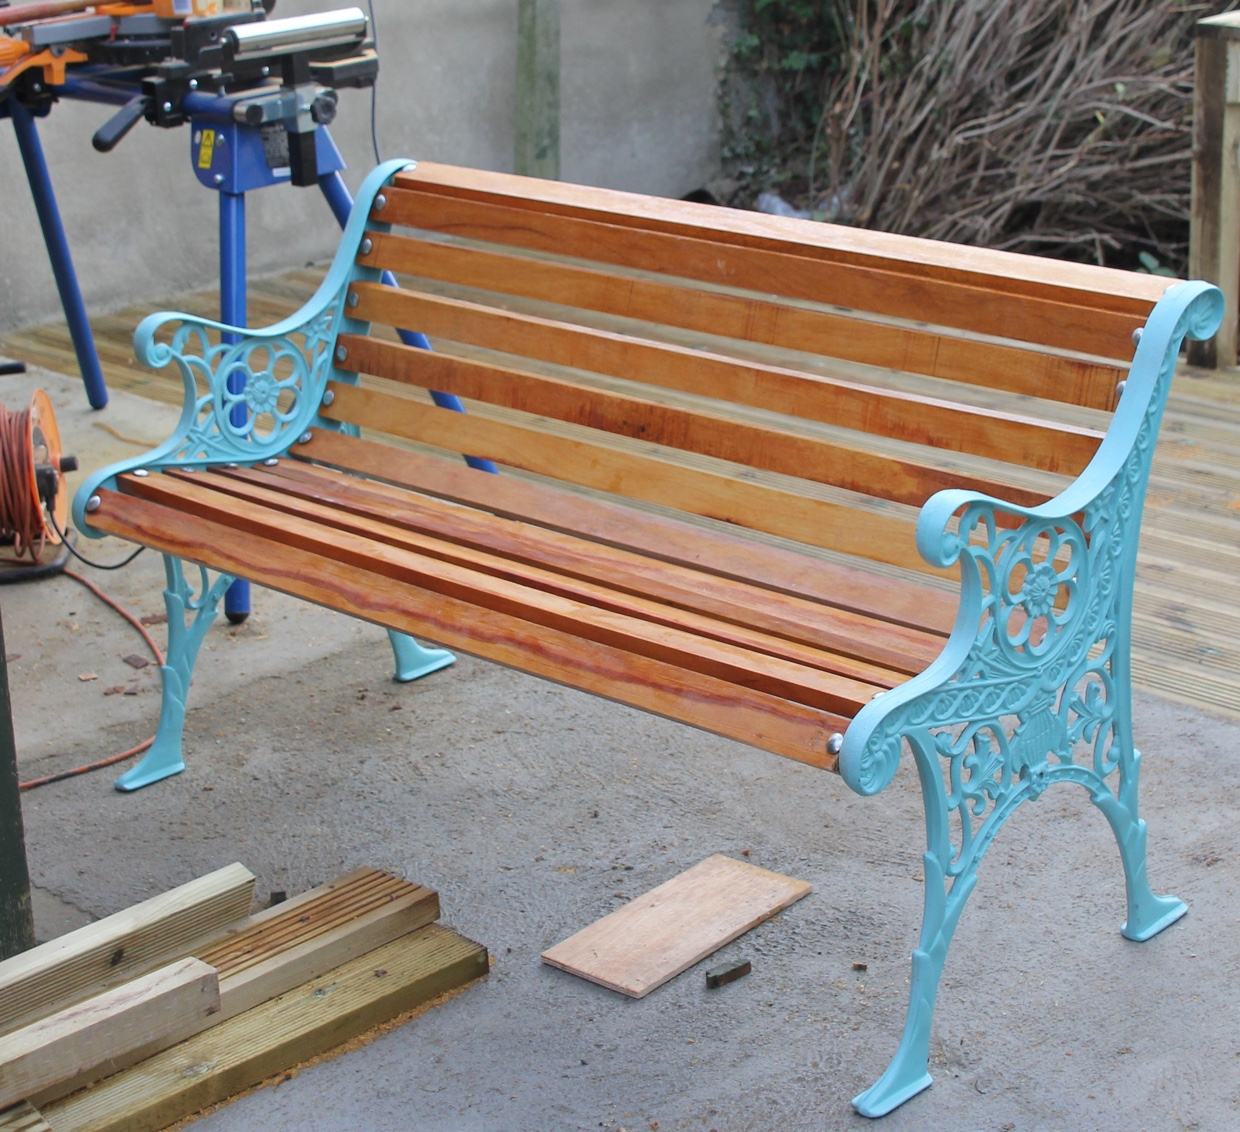 How To Restore A Cast Iron Bench By New Wood And Painting.